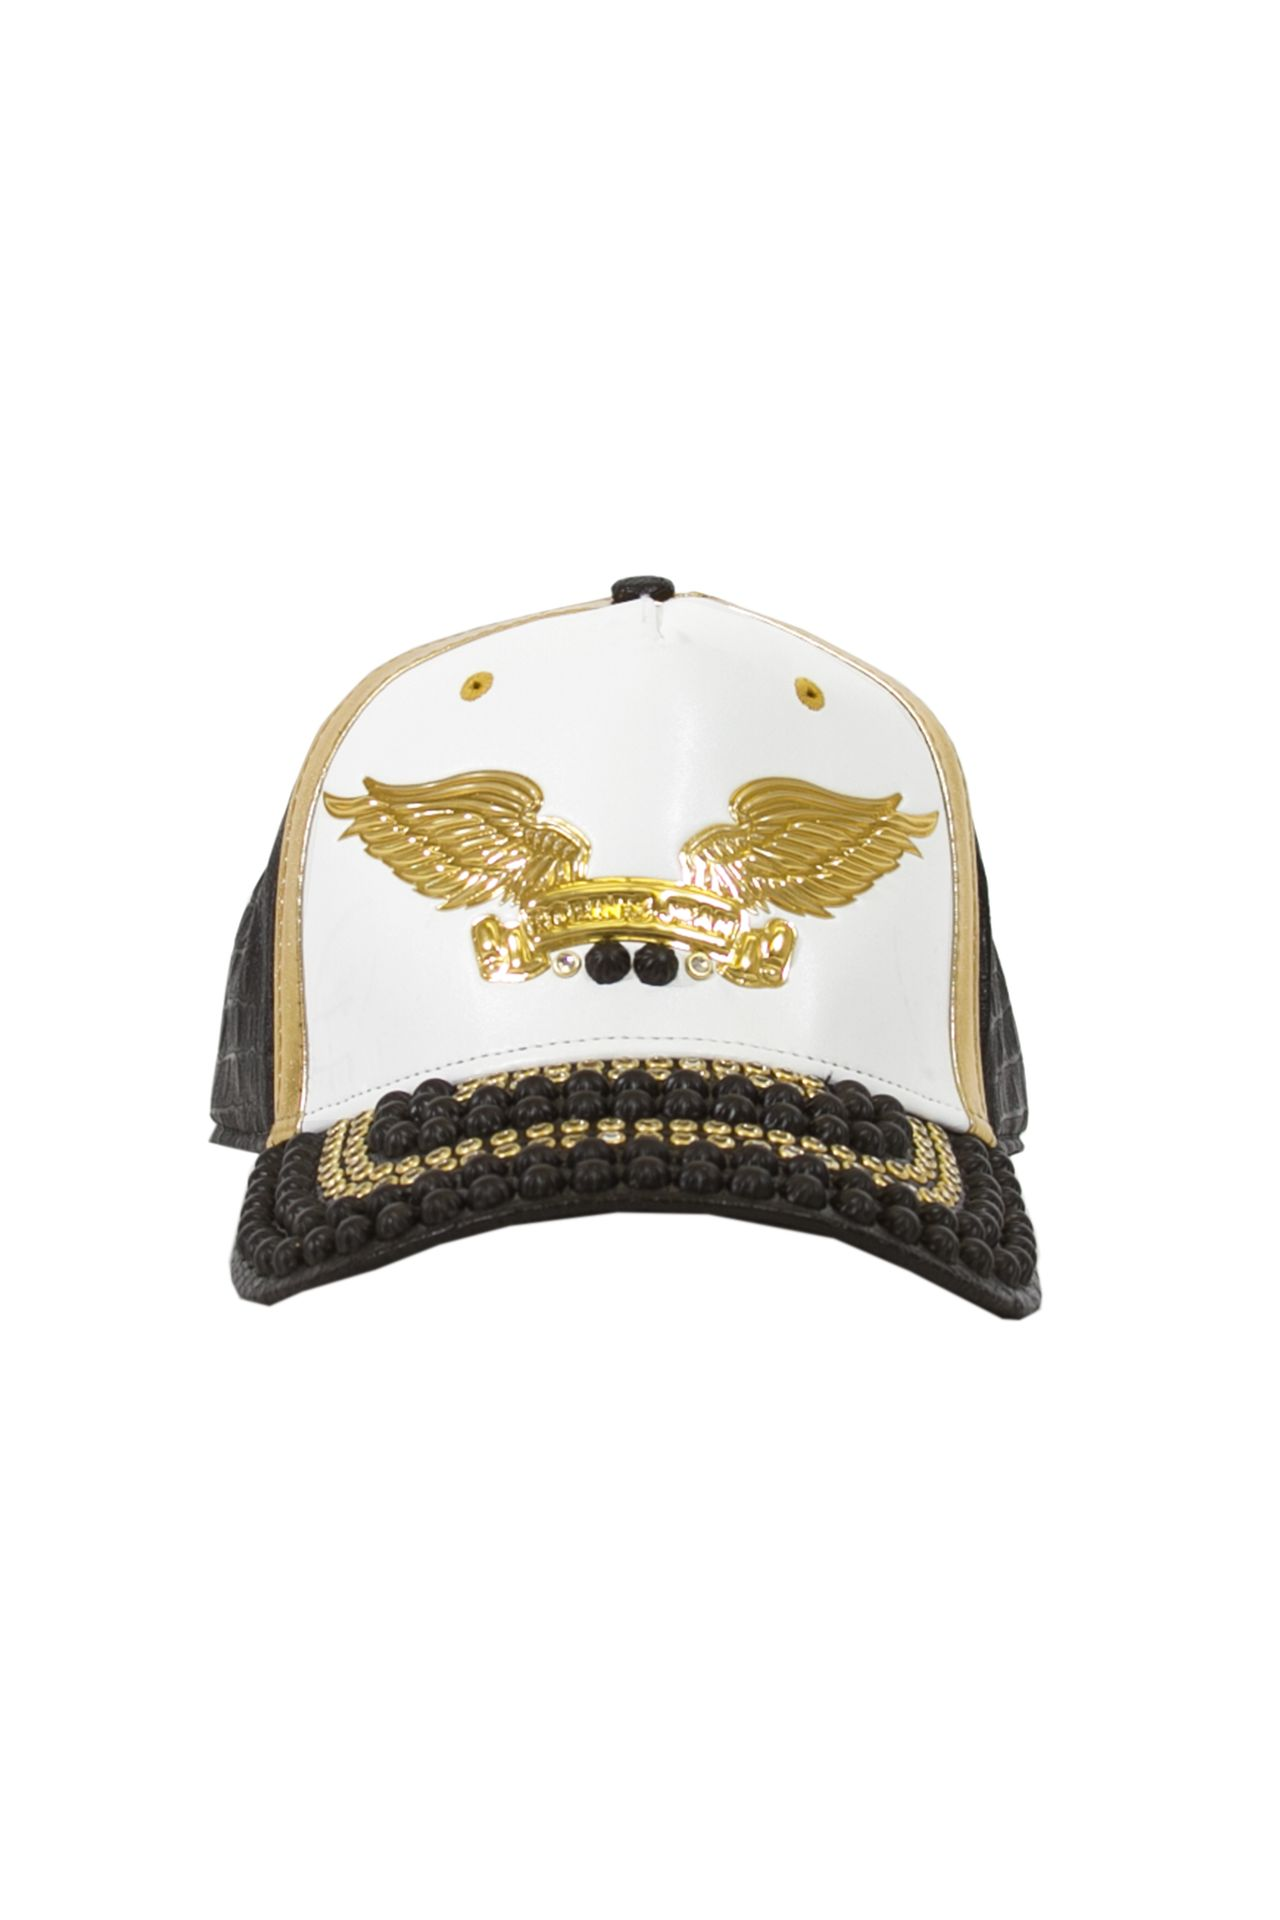 WHITE WITH GOLD ACCENT VEGAN LEATHER CAP STUDDED